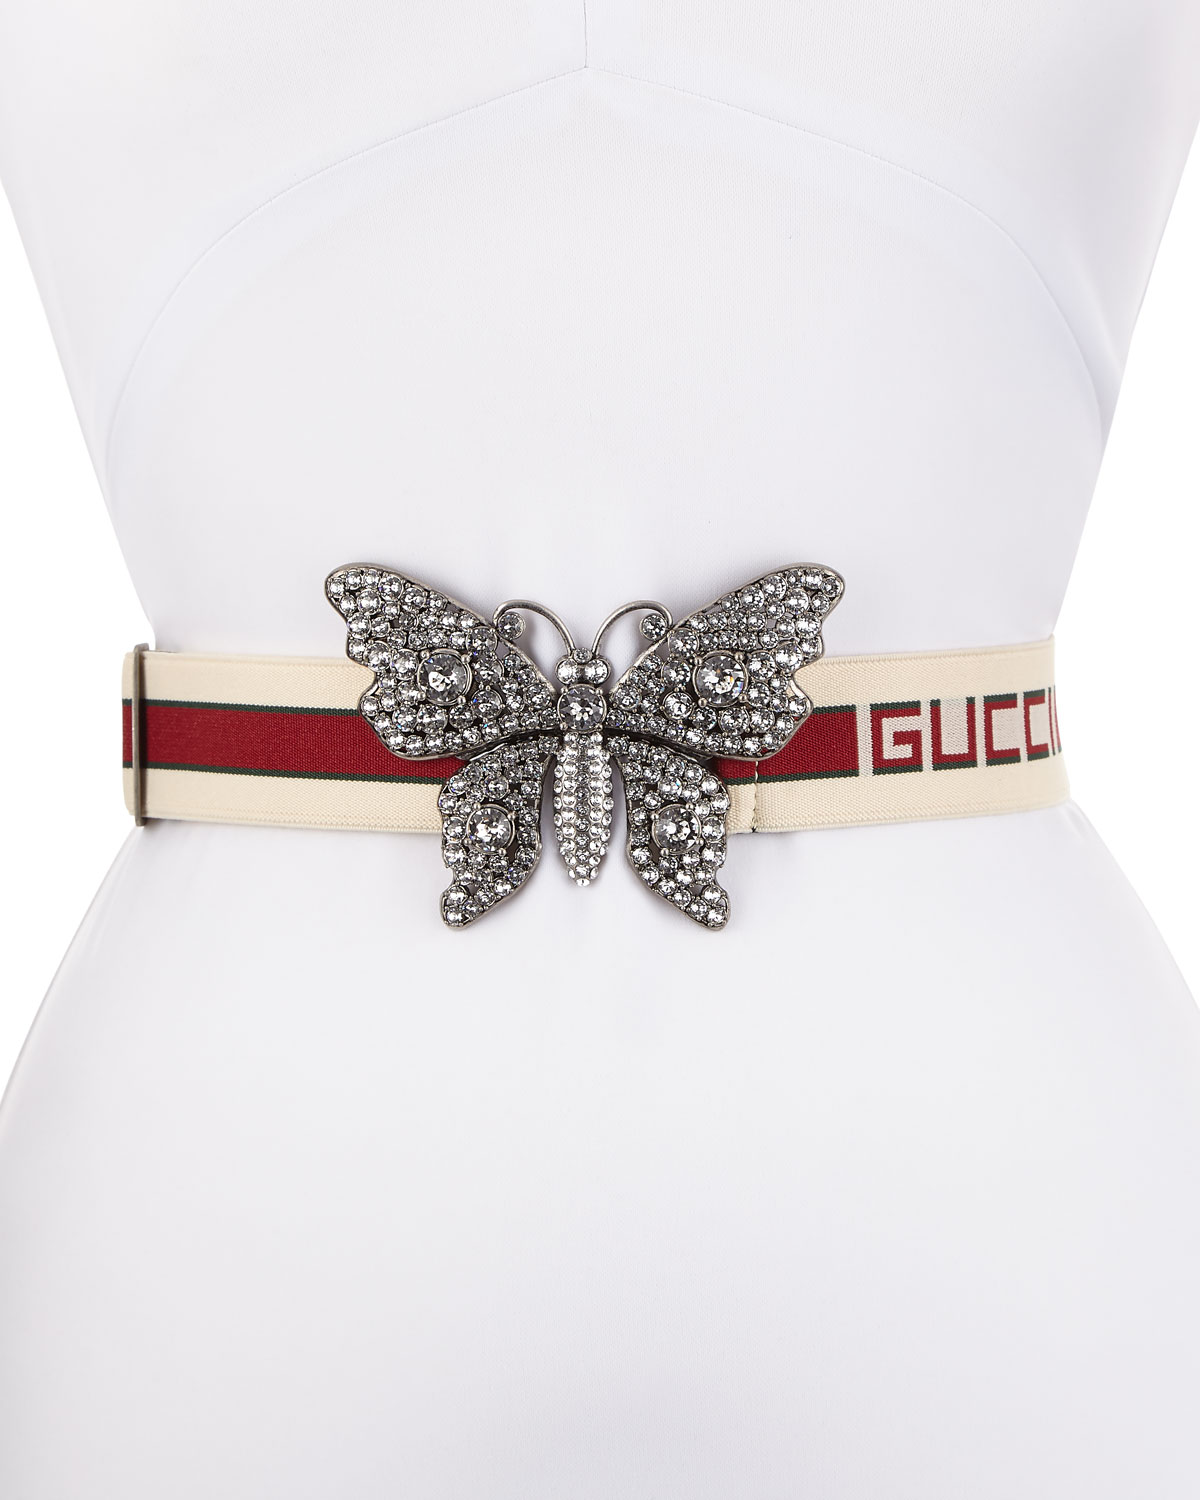 cf762eef4c0 Gucci Elastic Striped Belt w  Crystal Butterfly Buckle